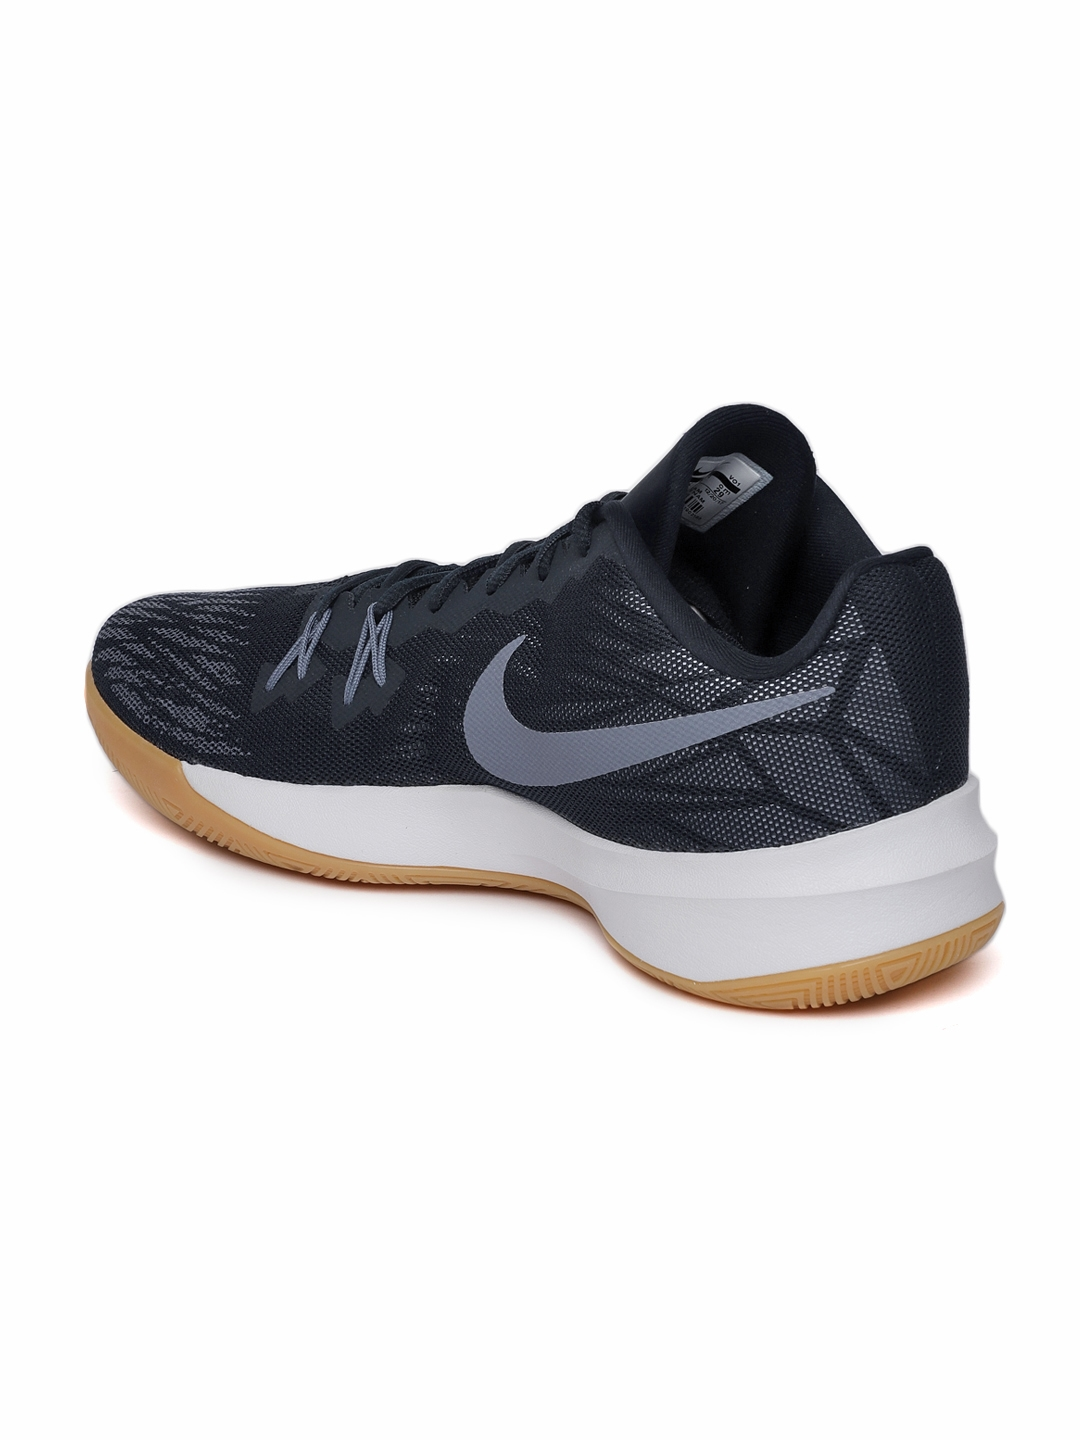 e0d1626ab443 Buy Nike Men Navy ZOOM EVIDENCE II Basketball Shoes - Sports Shoes ...